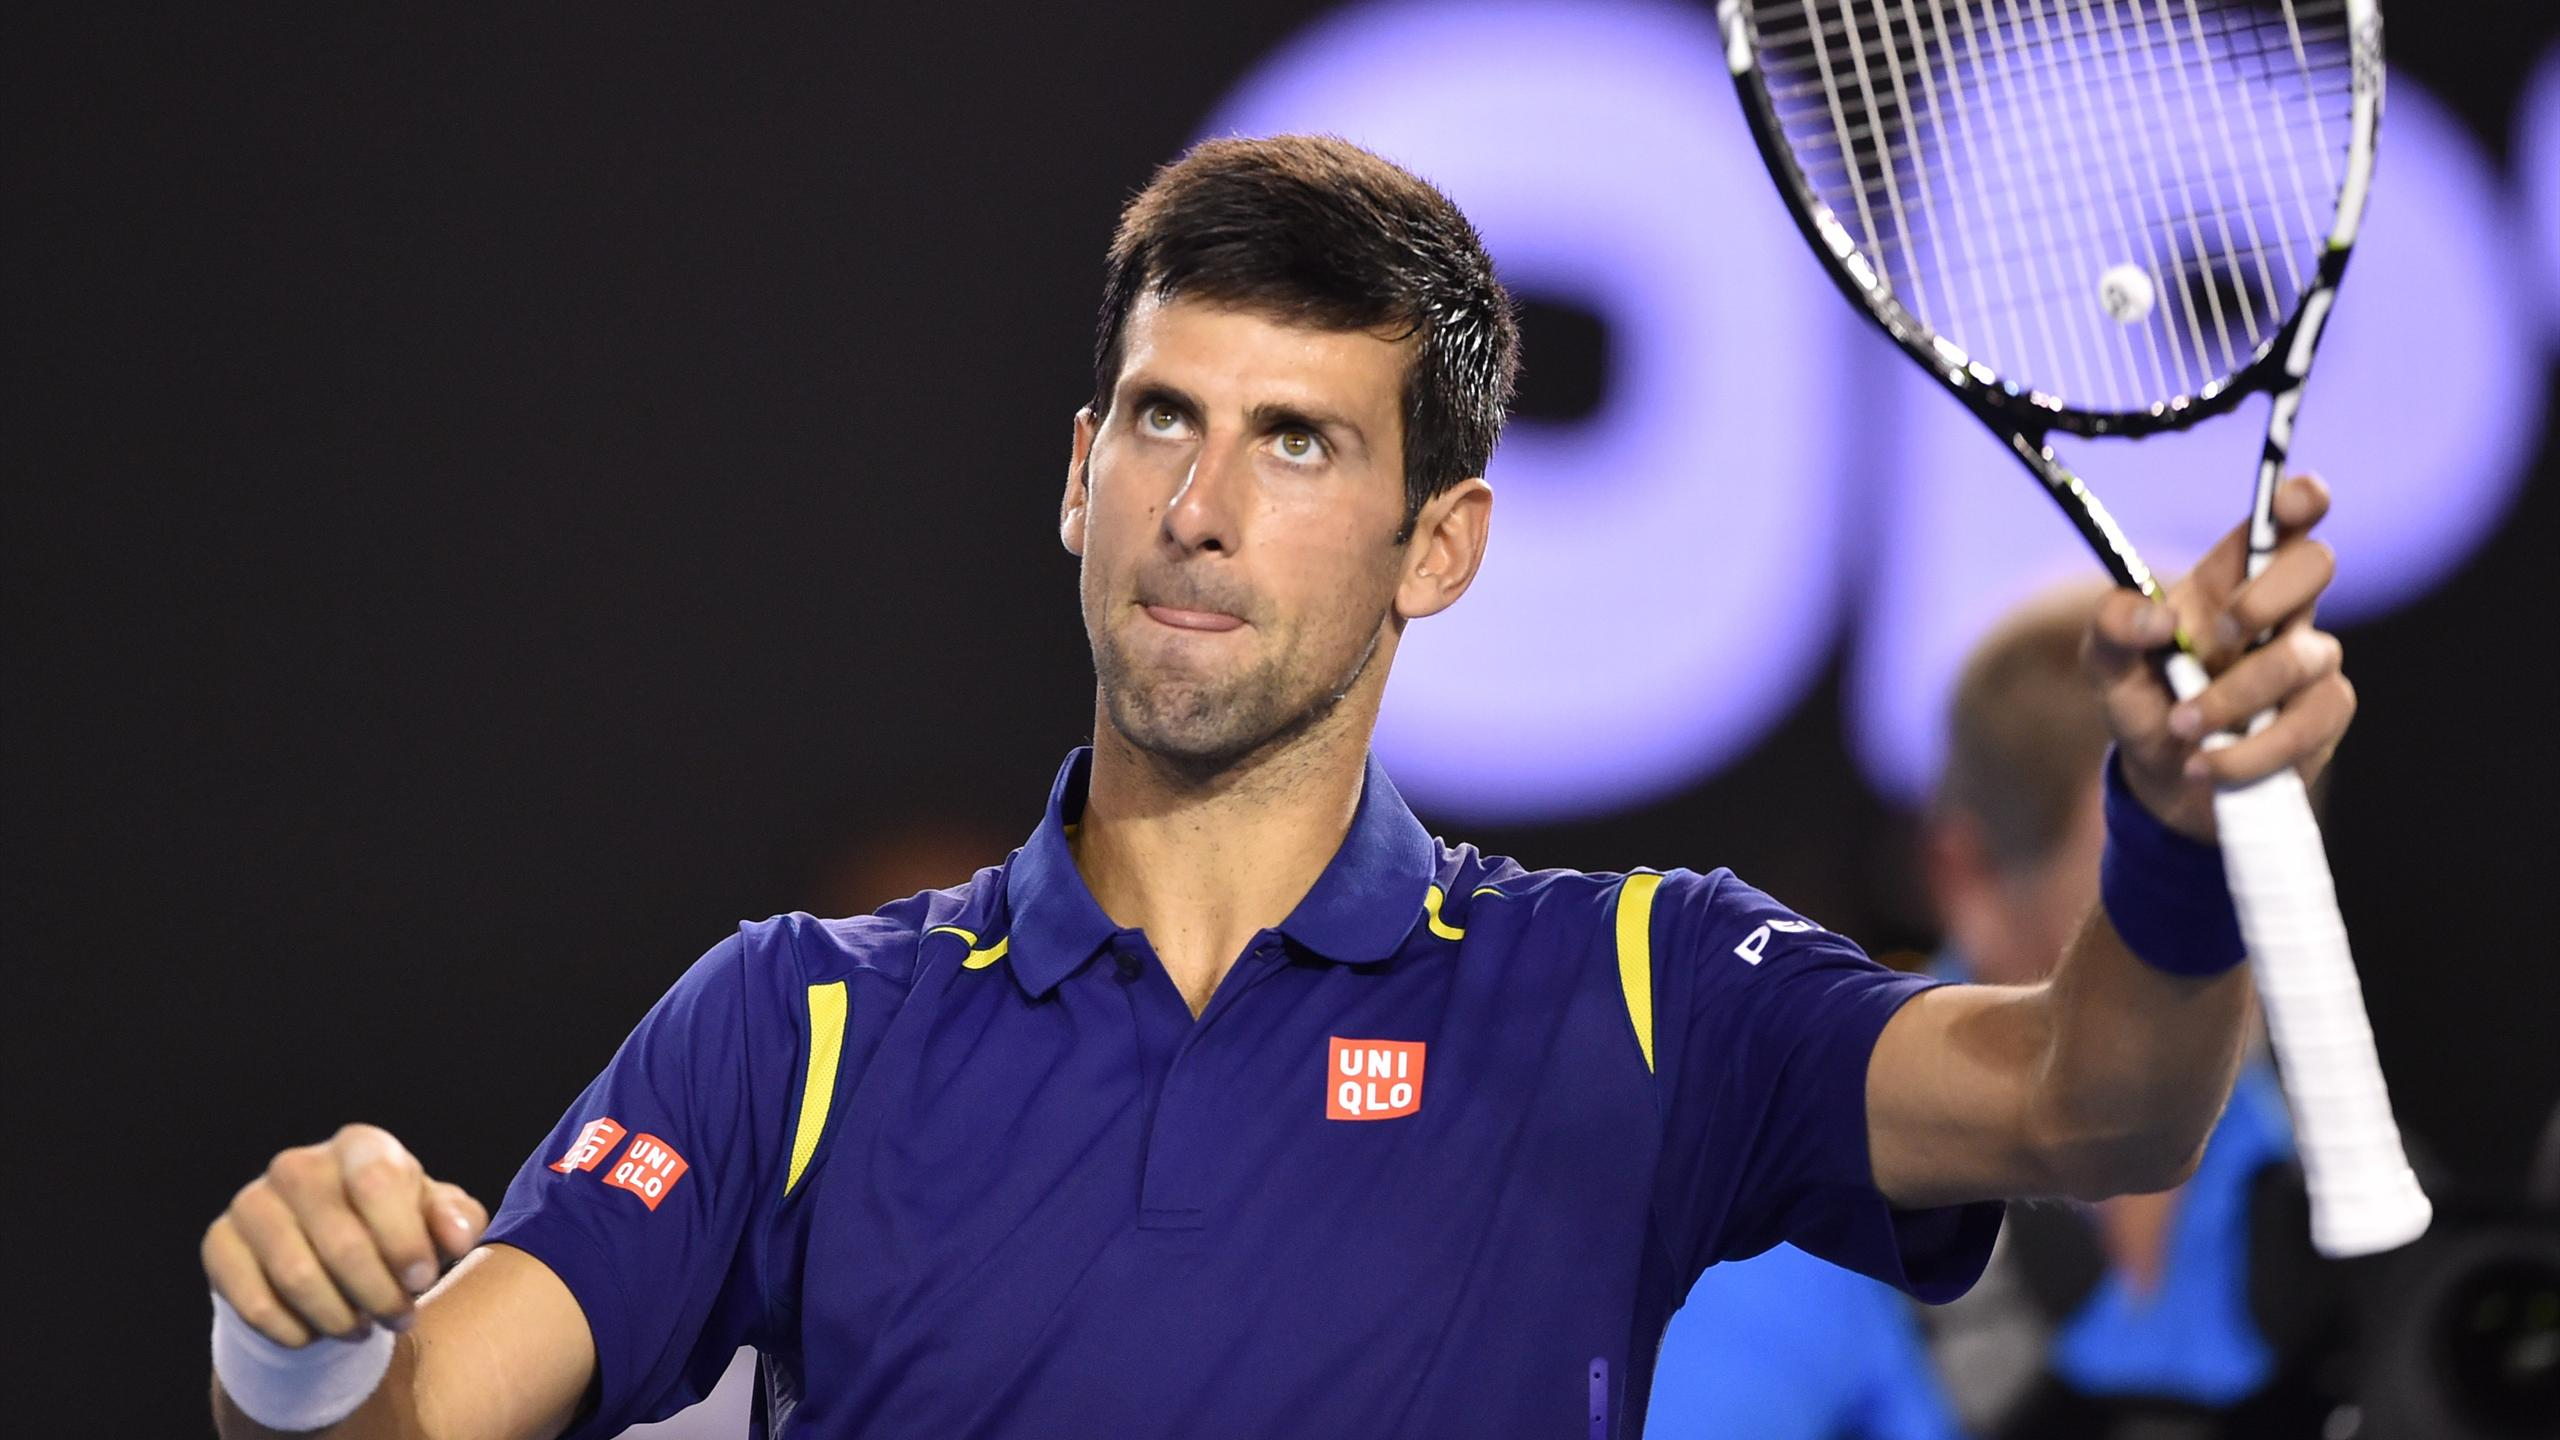 Serbia's Novak Djokovic celebrates after victory in men's singles match against France's Quentin Halys